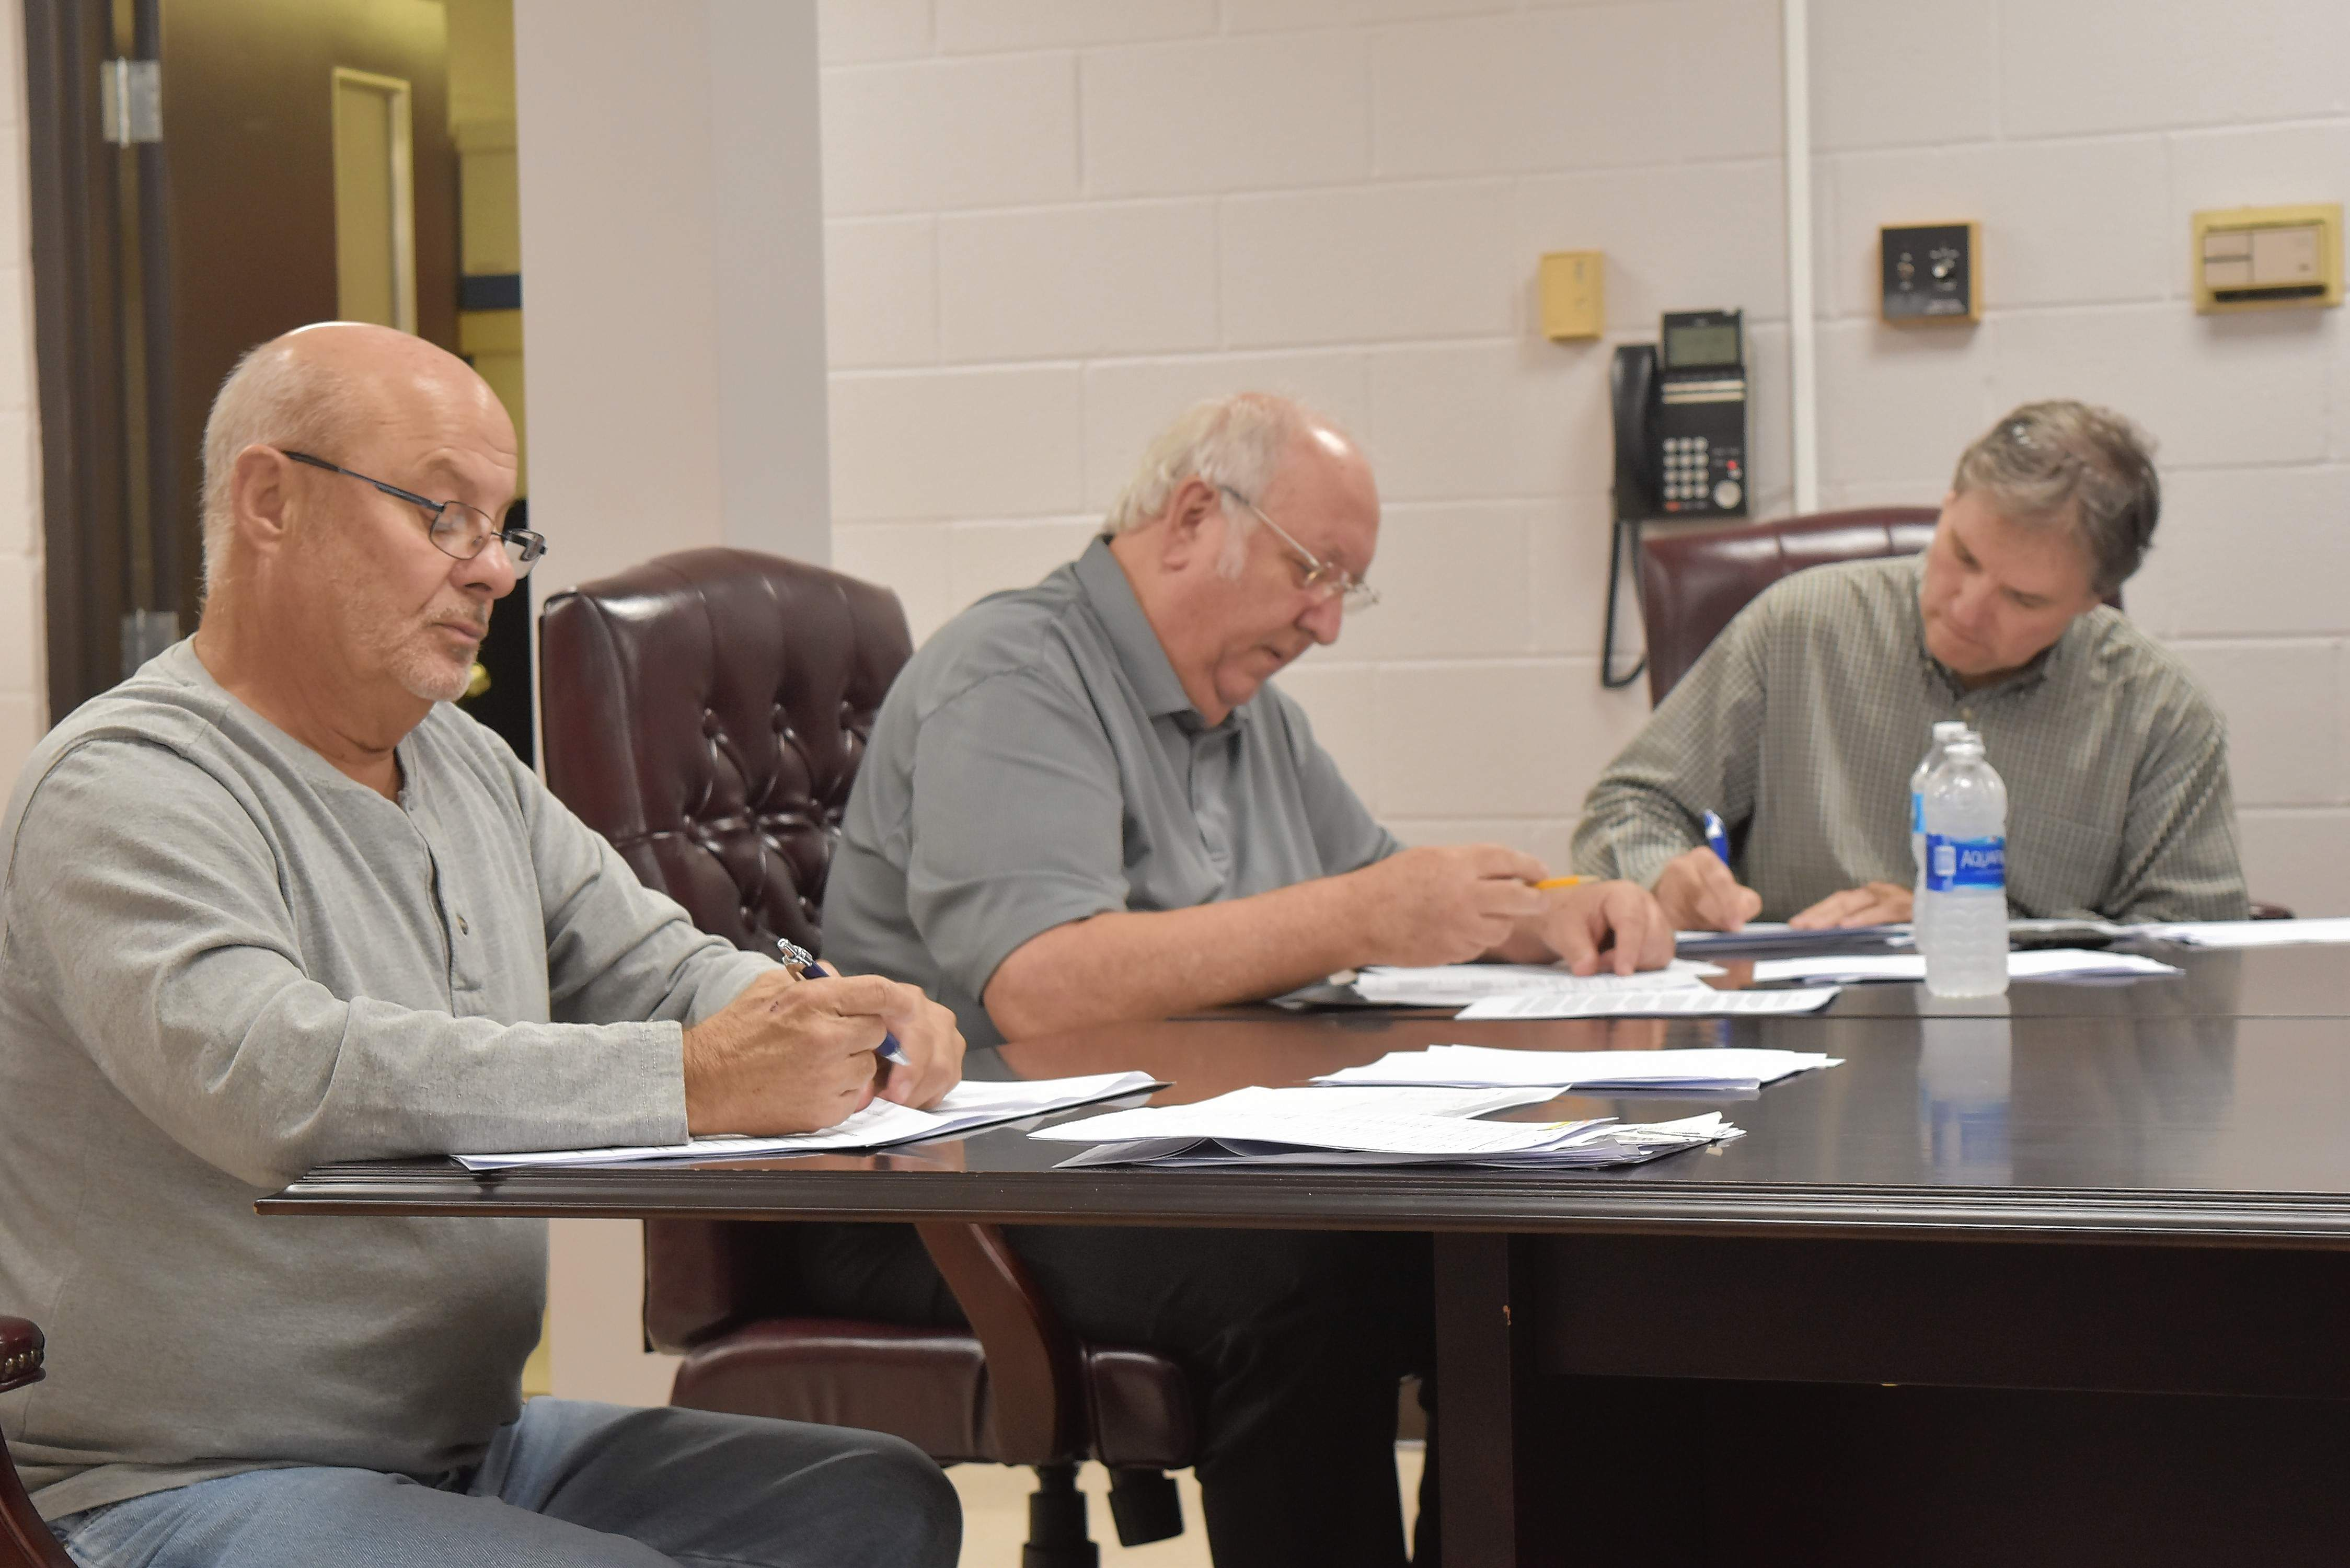 Benton Finance Commissioner Dennis Miller, second from left, said the city's annual financial report is now on public display and is expected to be approved in 30 days. At left is Commissioner Donald Storey, and at right is attorney Tom Malkovich.